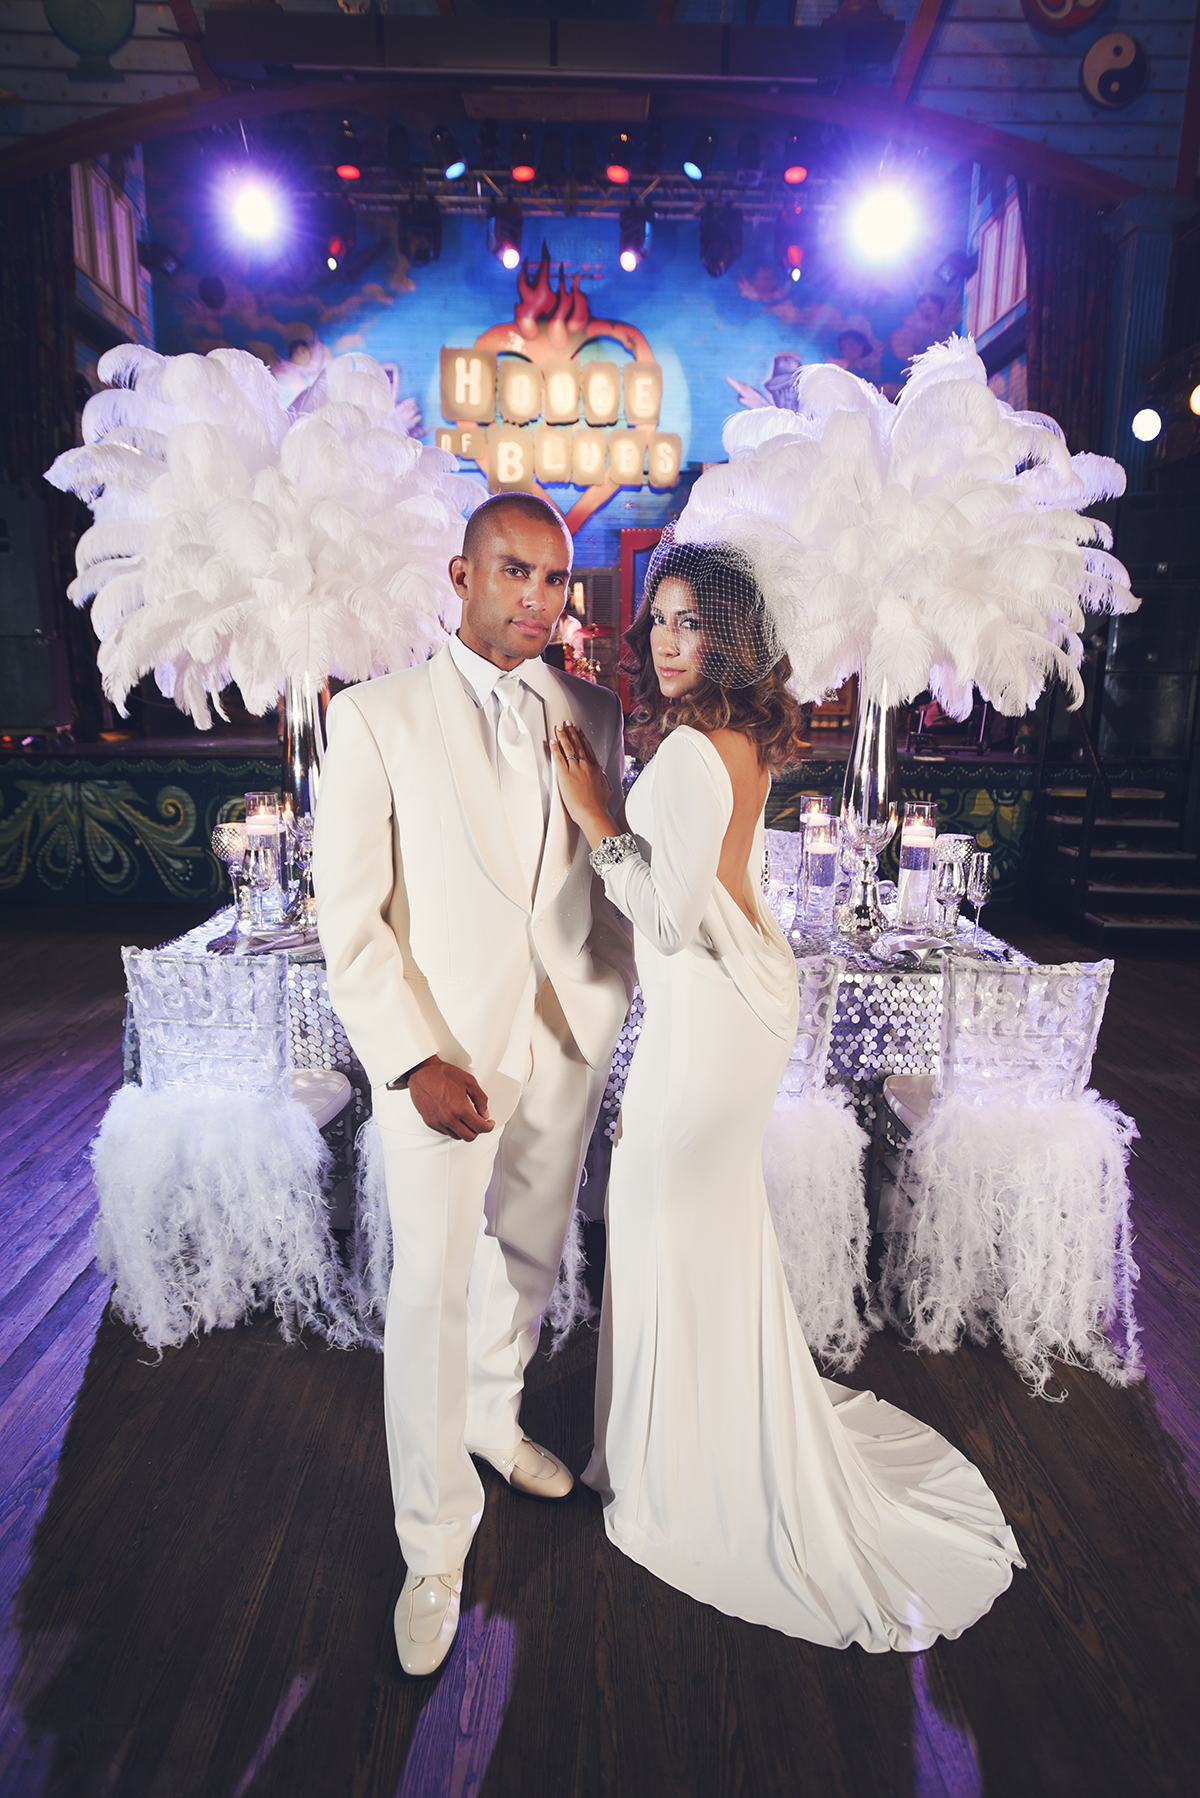 Sexy and chic, Fabiola stuns in a sleek, low-back ivory jersey bridal gown with rhinestone banding at the wrists. Charles' all-white ensemble from John's Tuxedos is perfect for the hot summer nights in New Orleans.